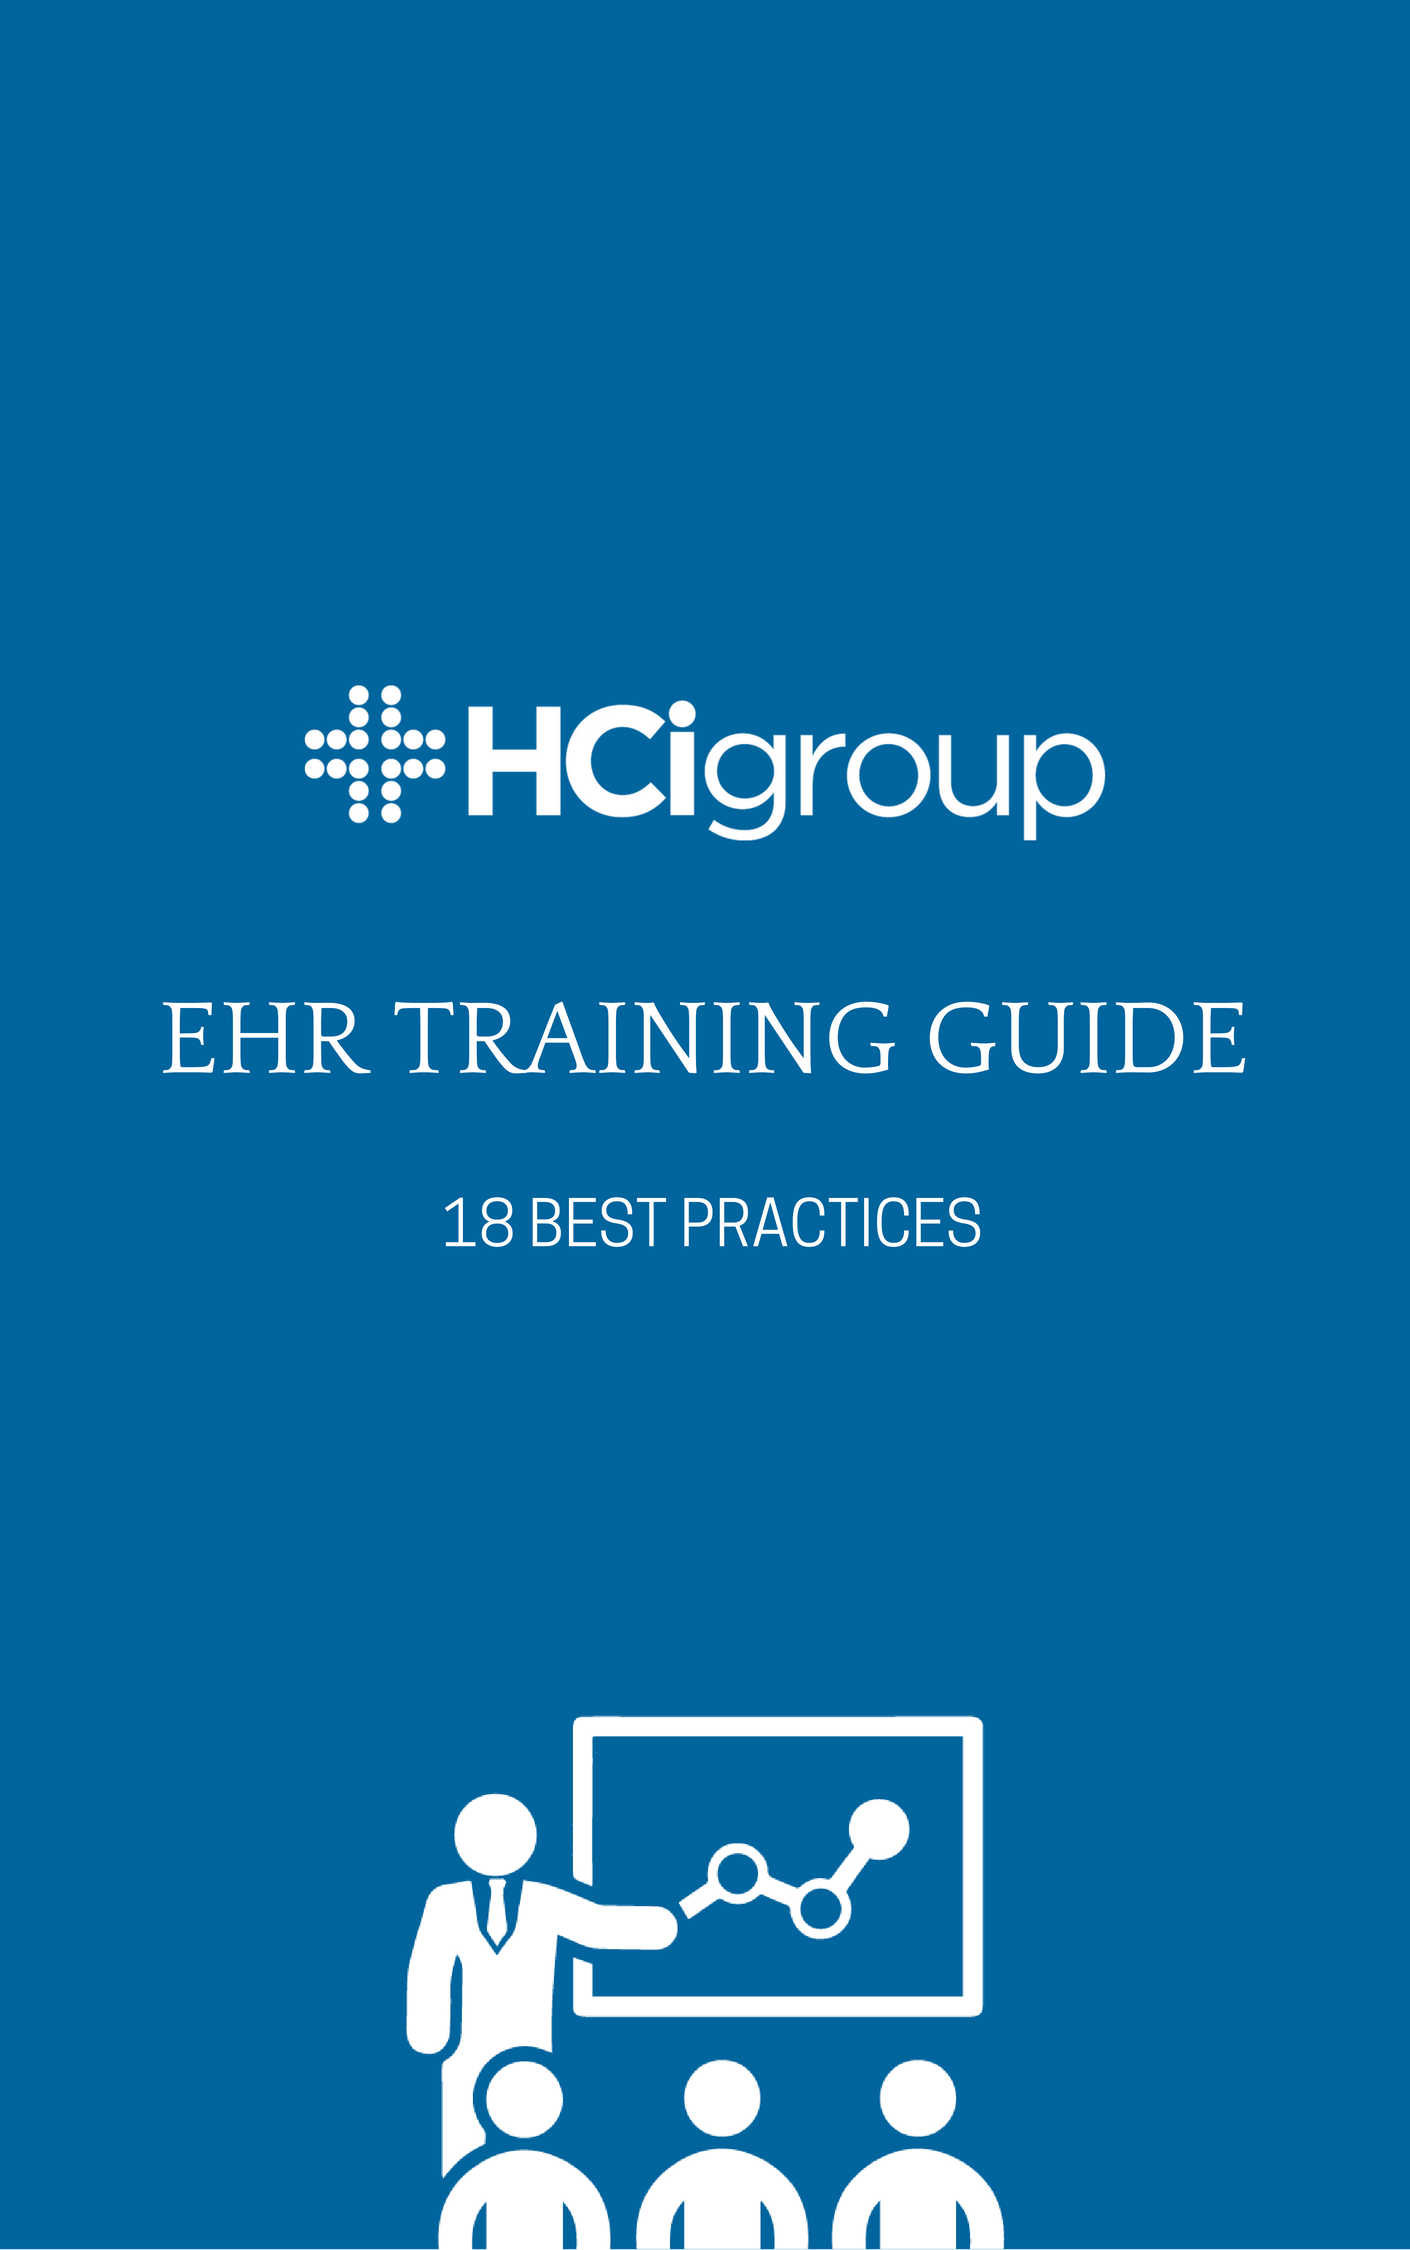 Download the EHR Training Guide 18 Best Practices